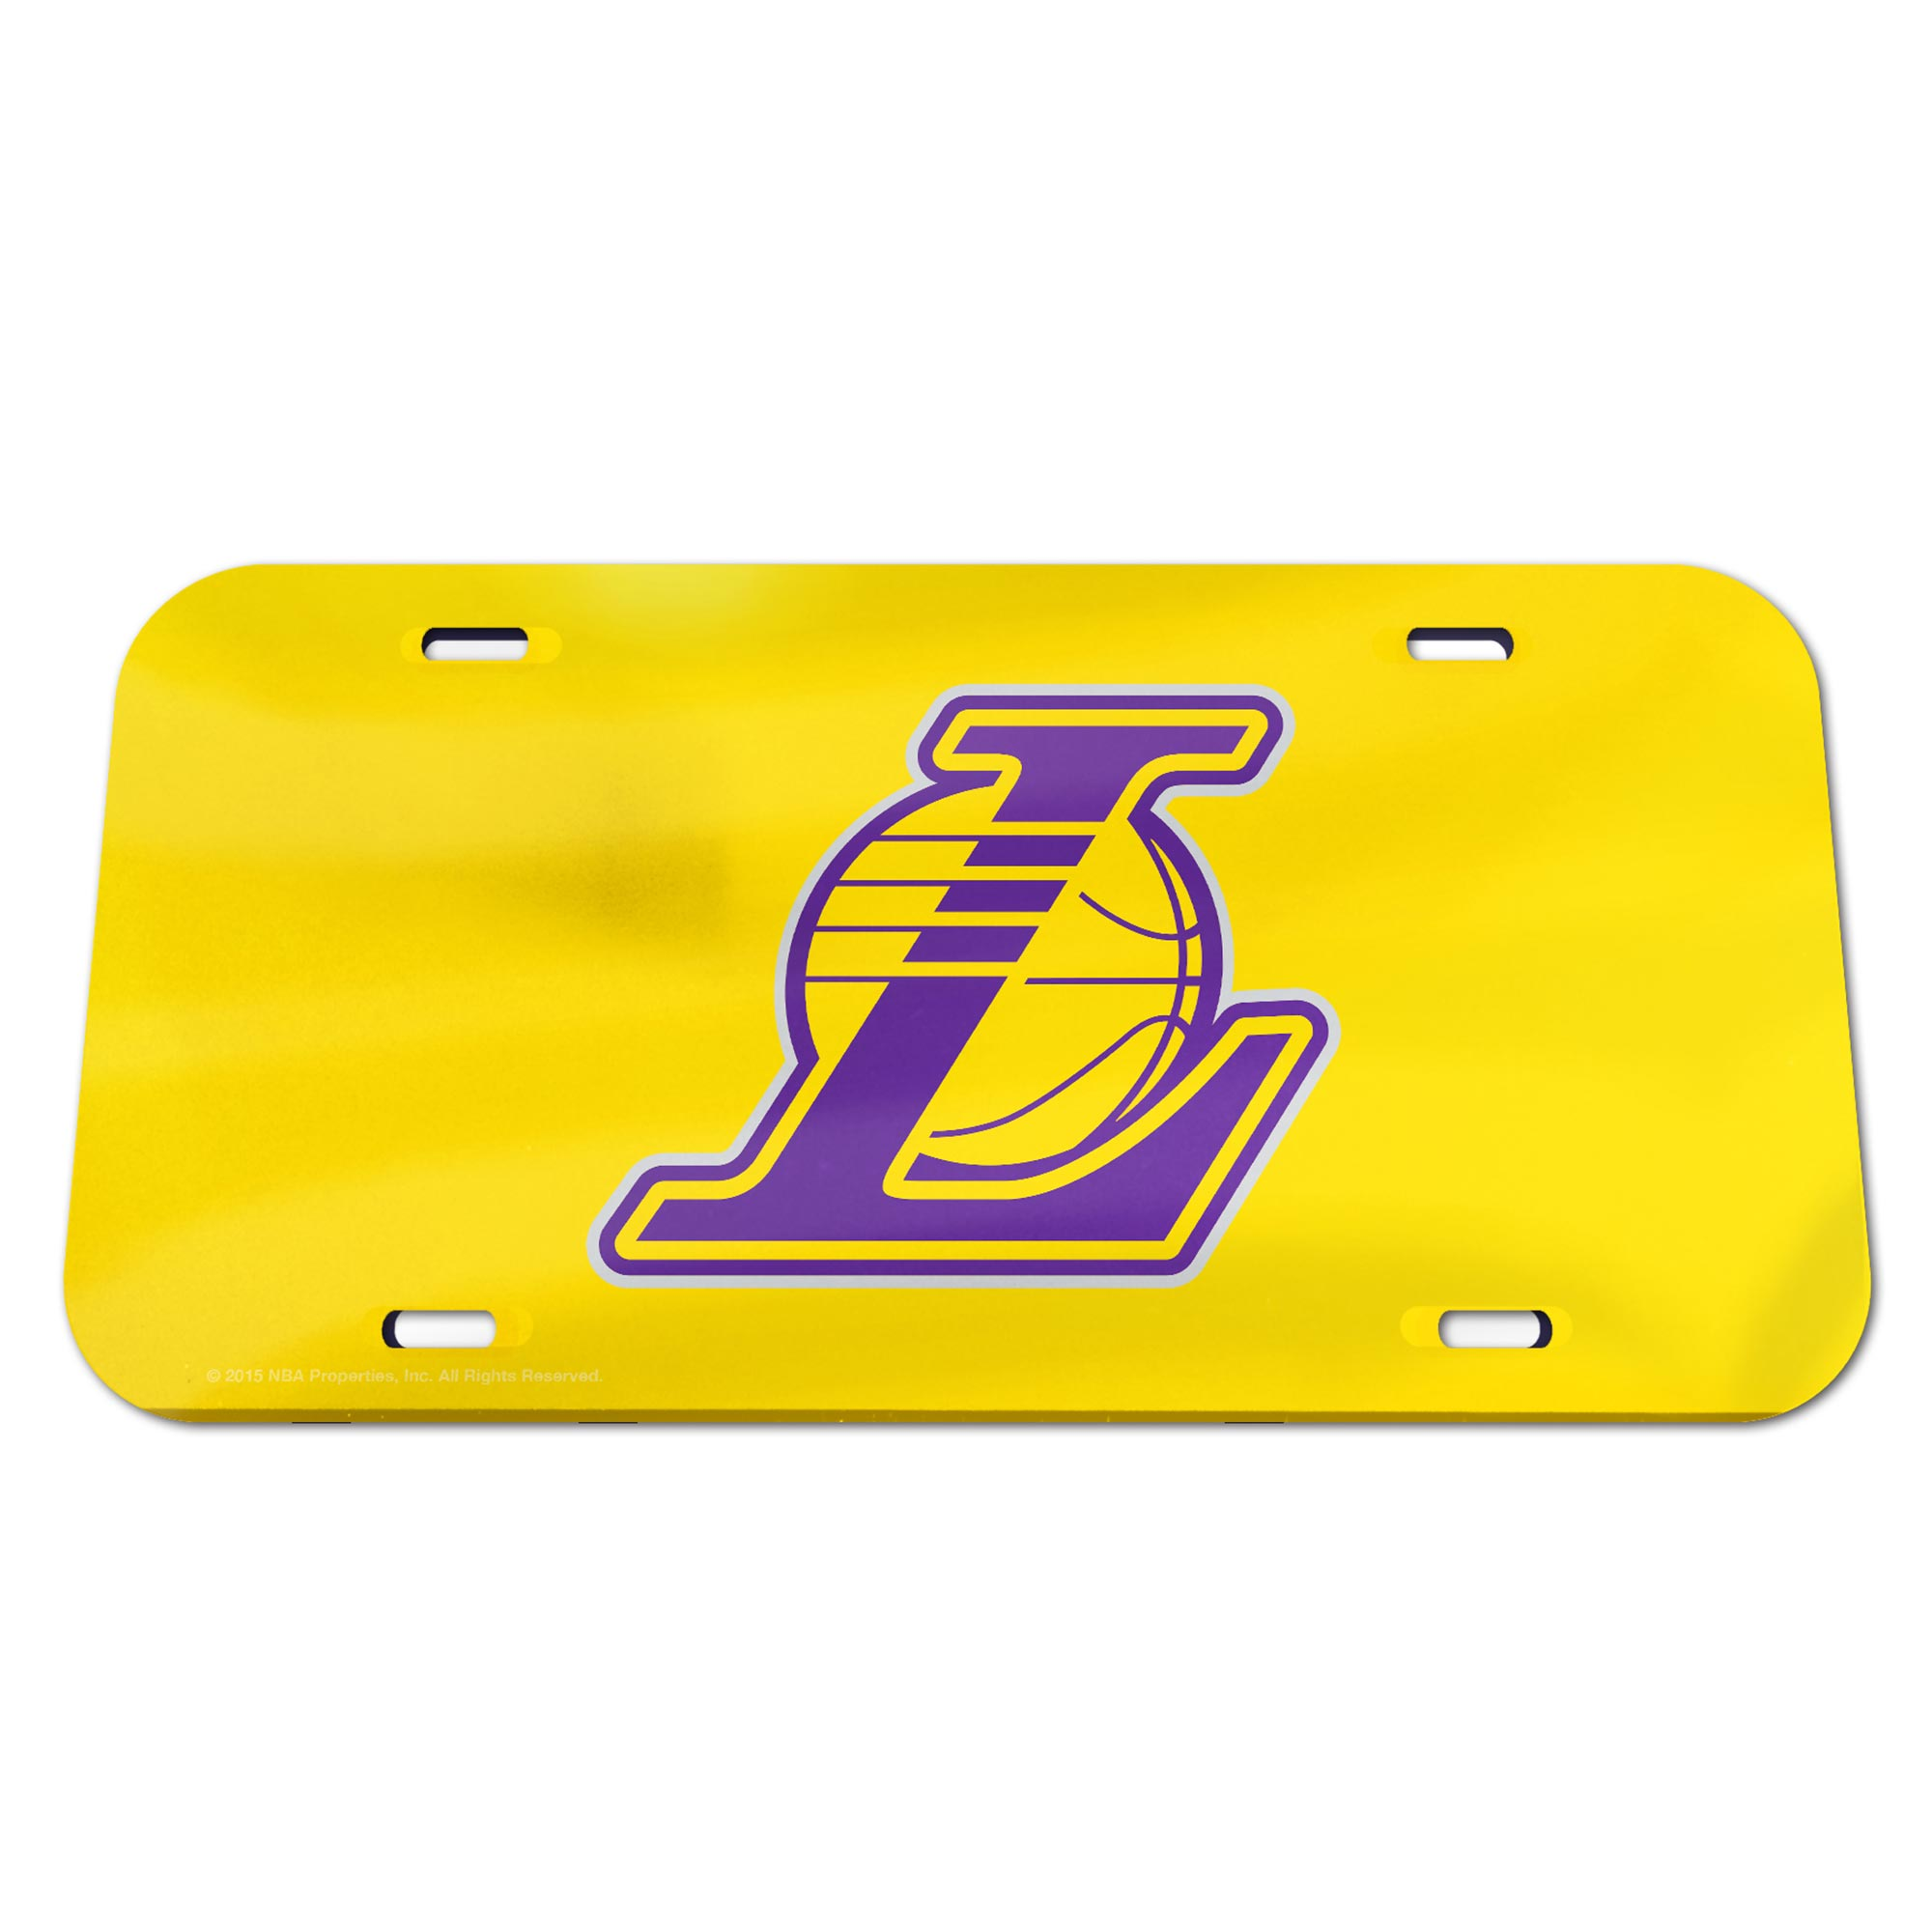 Los Angeles Lakers Mirror Wall License Plate